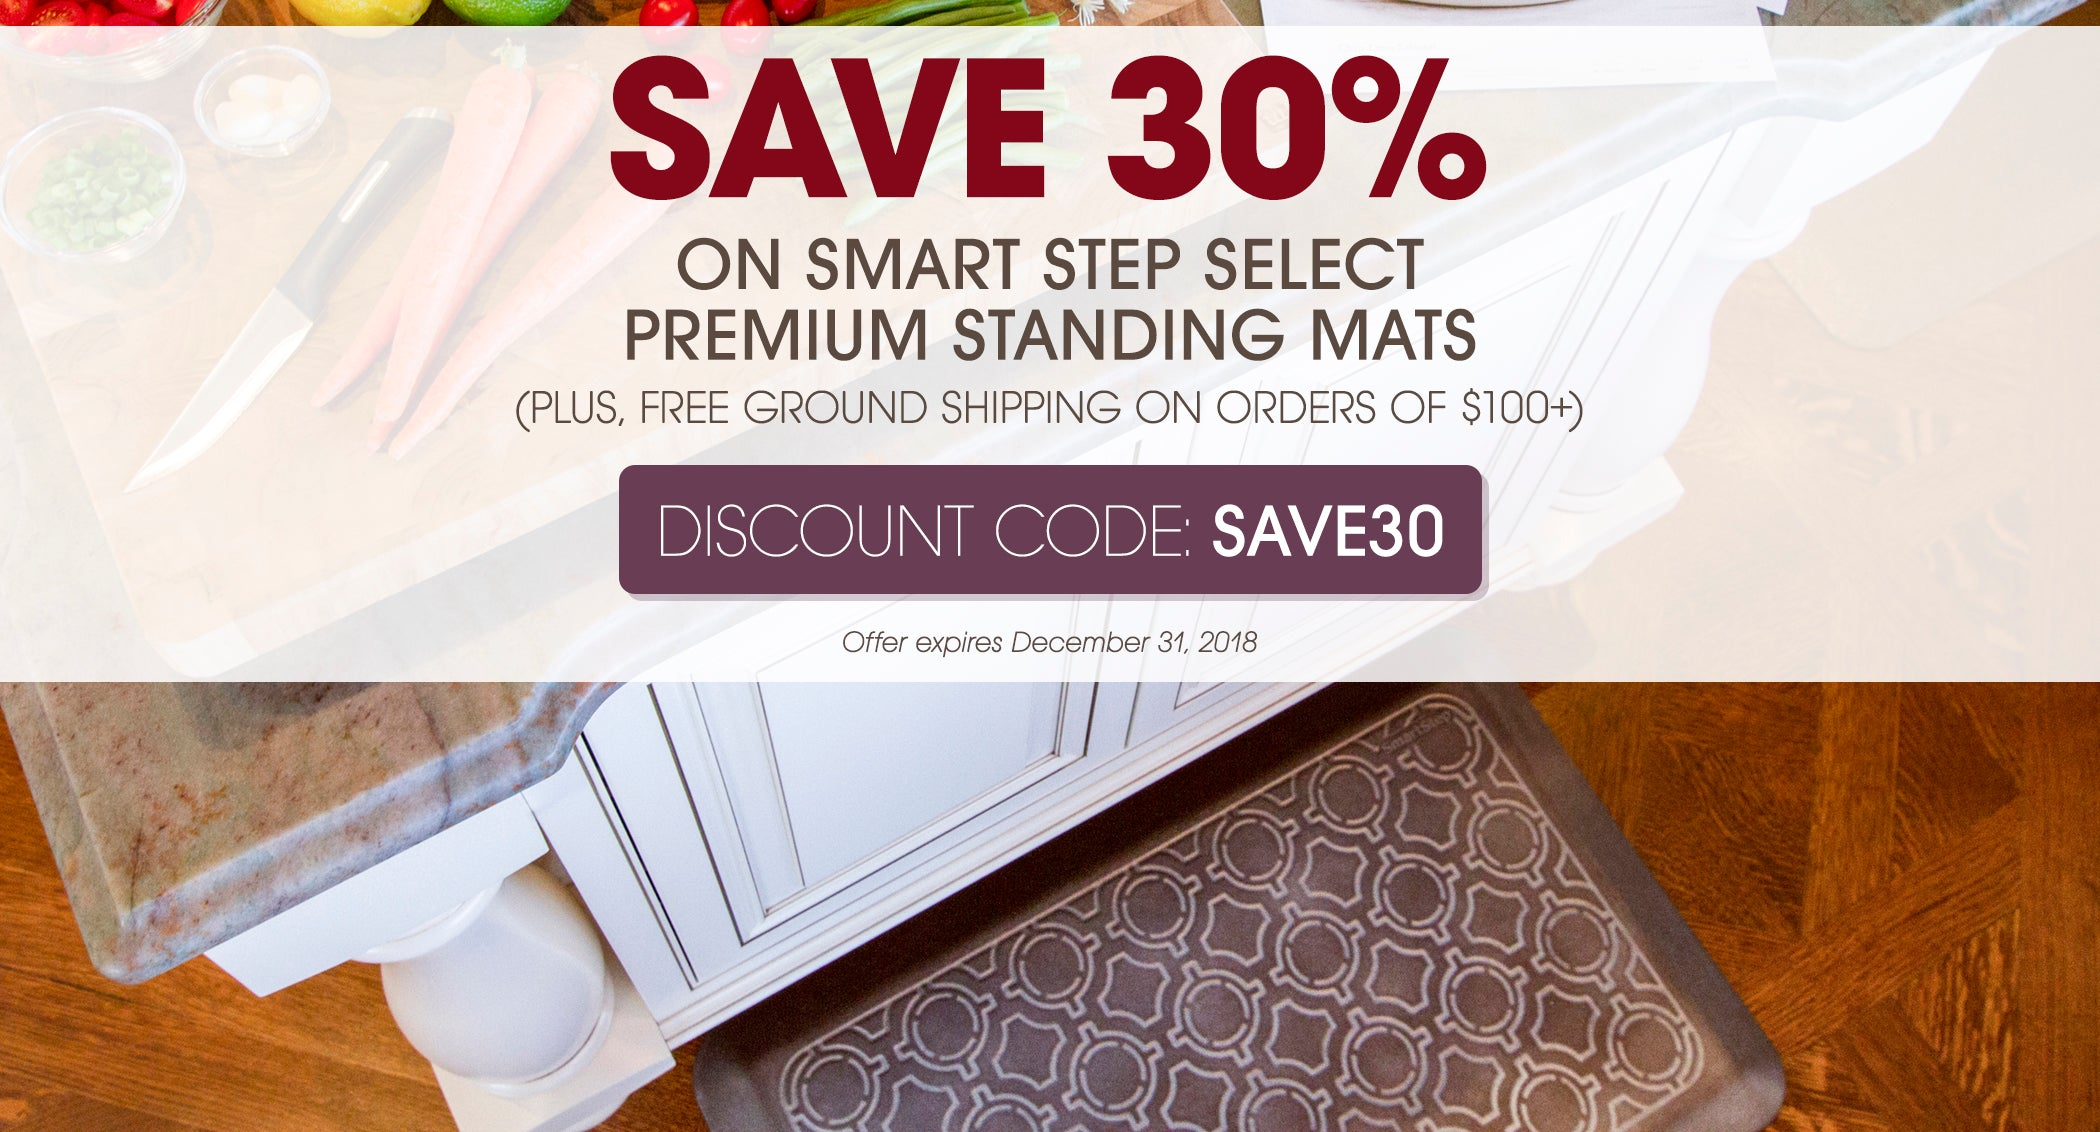 Save 30% on Smart Step Select Premium Standing Mats with code SAVE30